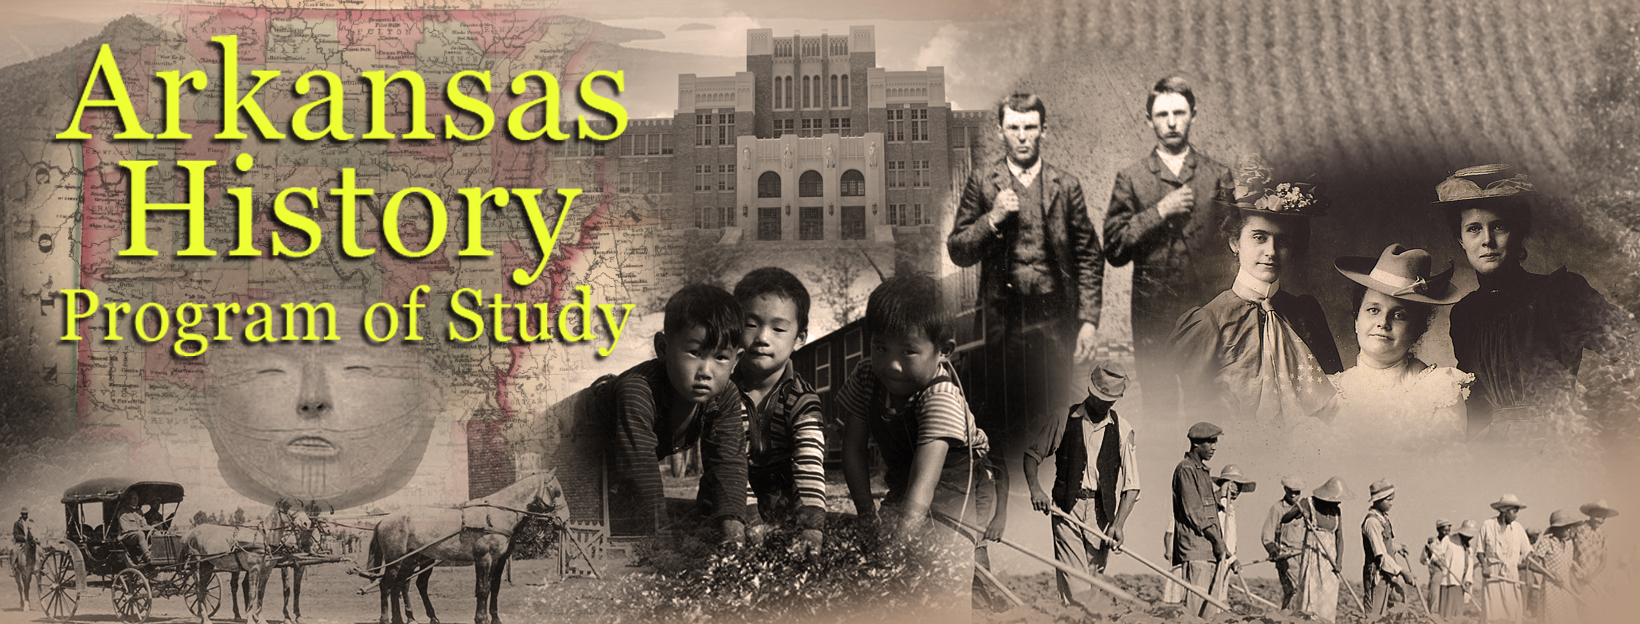 Arkansas History Program of Study Banner